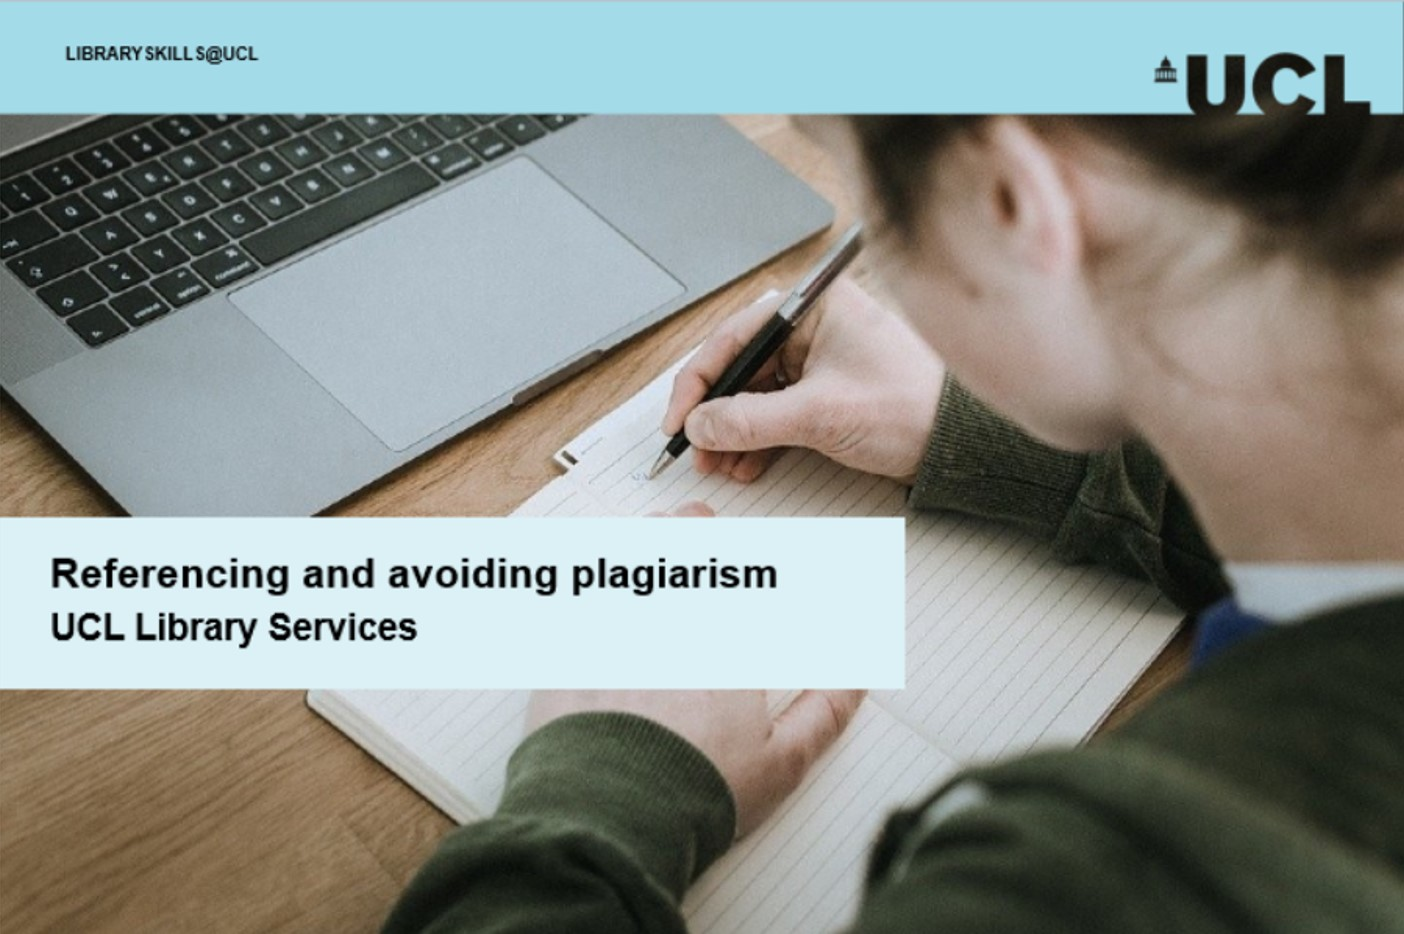 Referencing and avoiding plagiarism tutorial